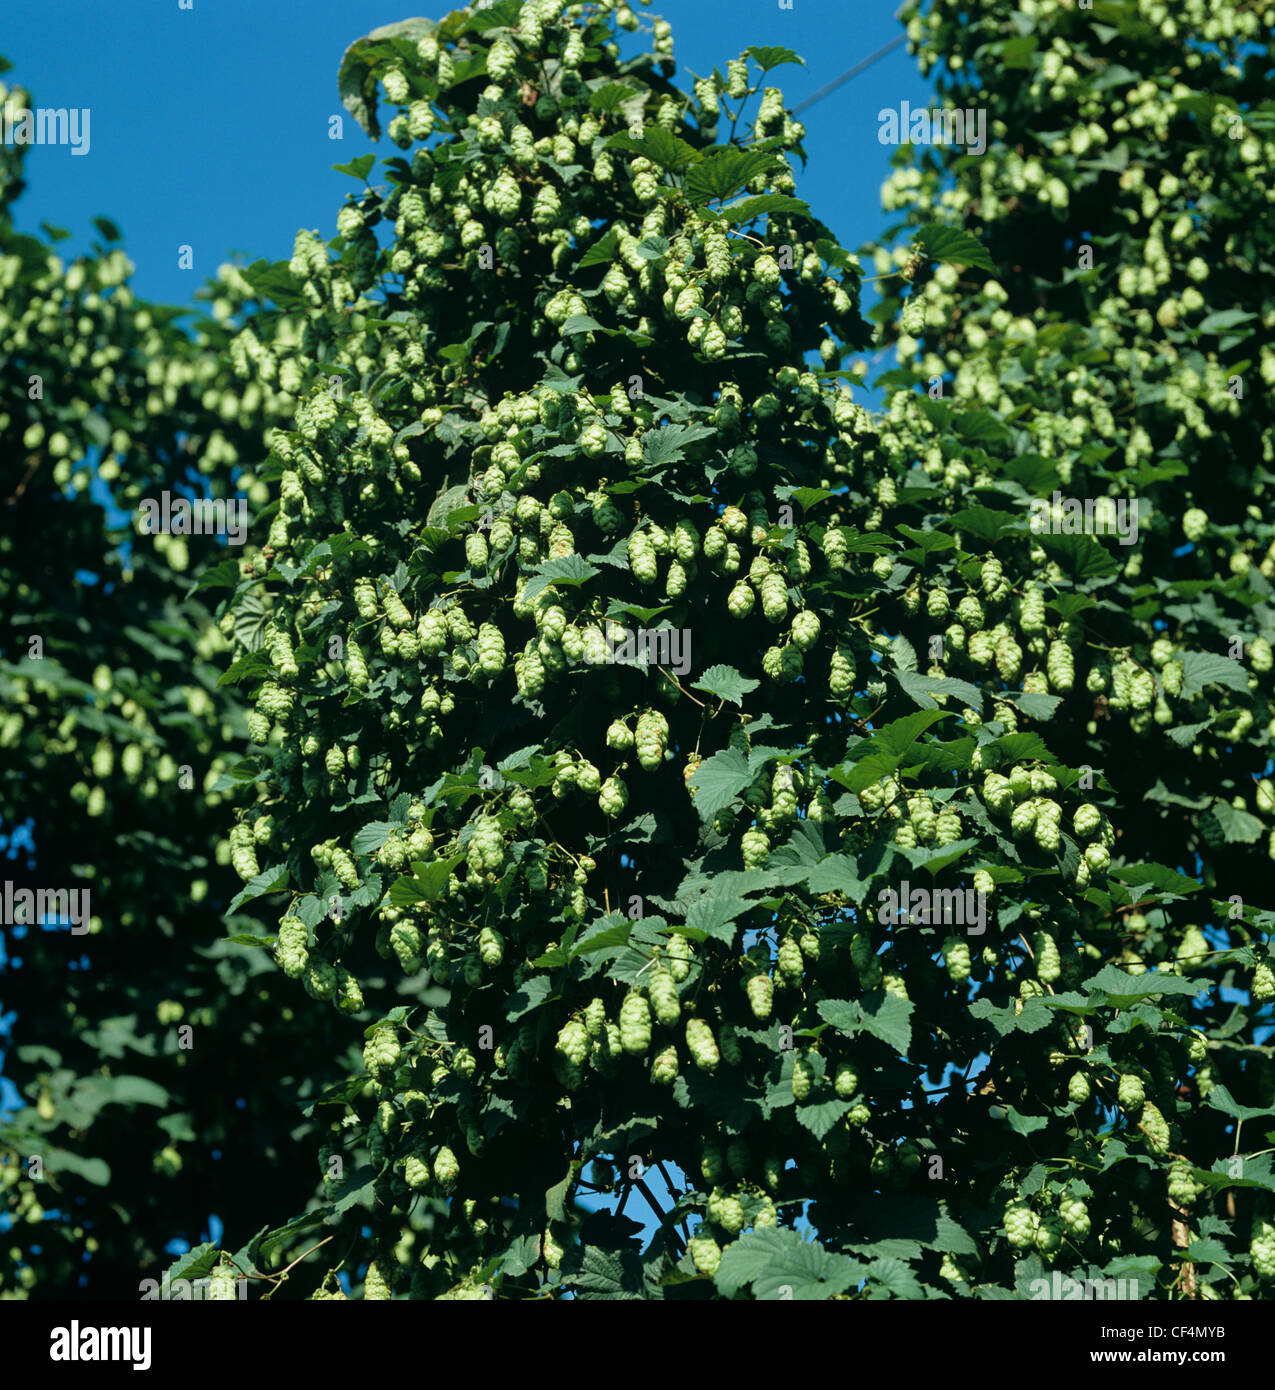 Hops in flower on the vines, Herefordshire - Stock Image